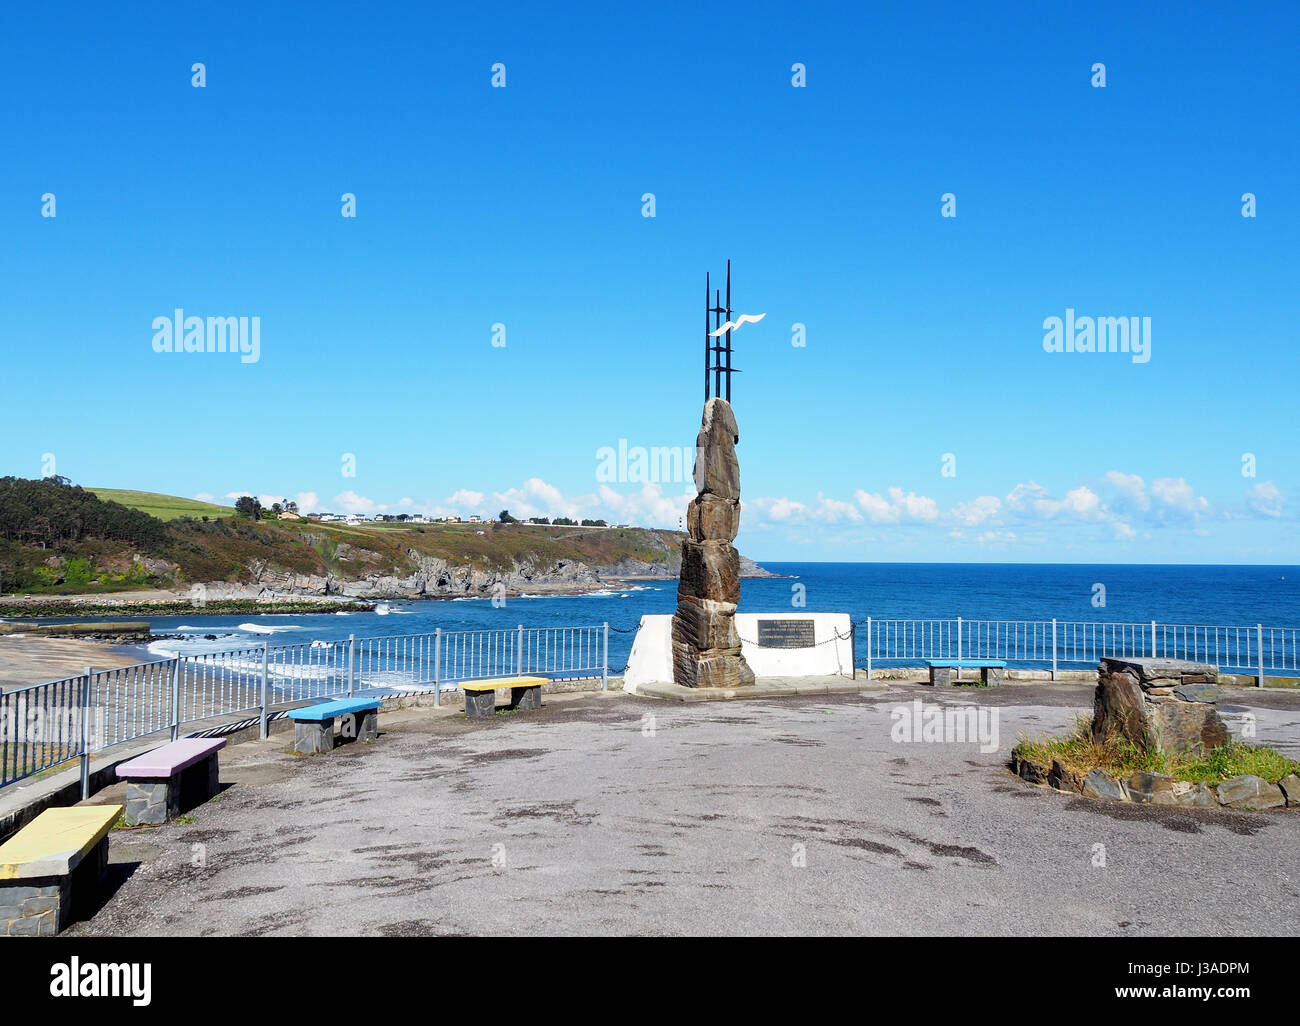 Emigrant monument in Navia, Spain. It is located in the viewpoint of the beach of Navia and is a tribute to the - Stock Image